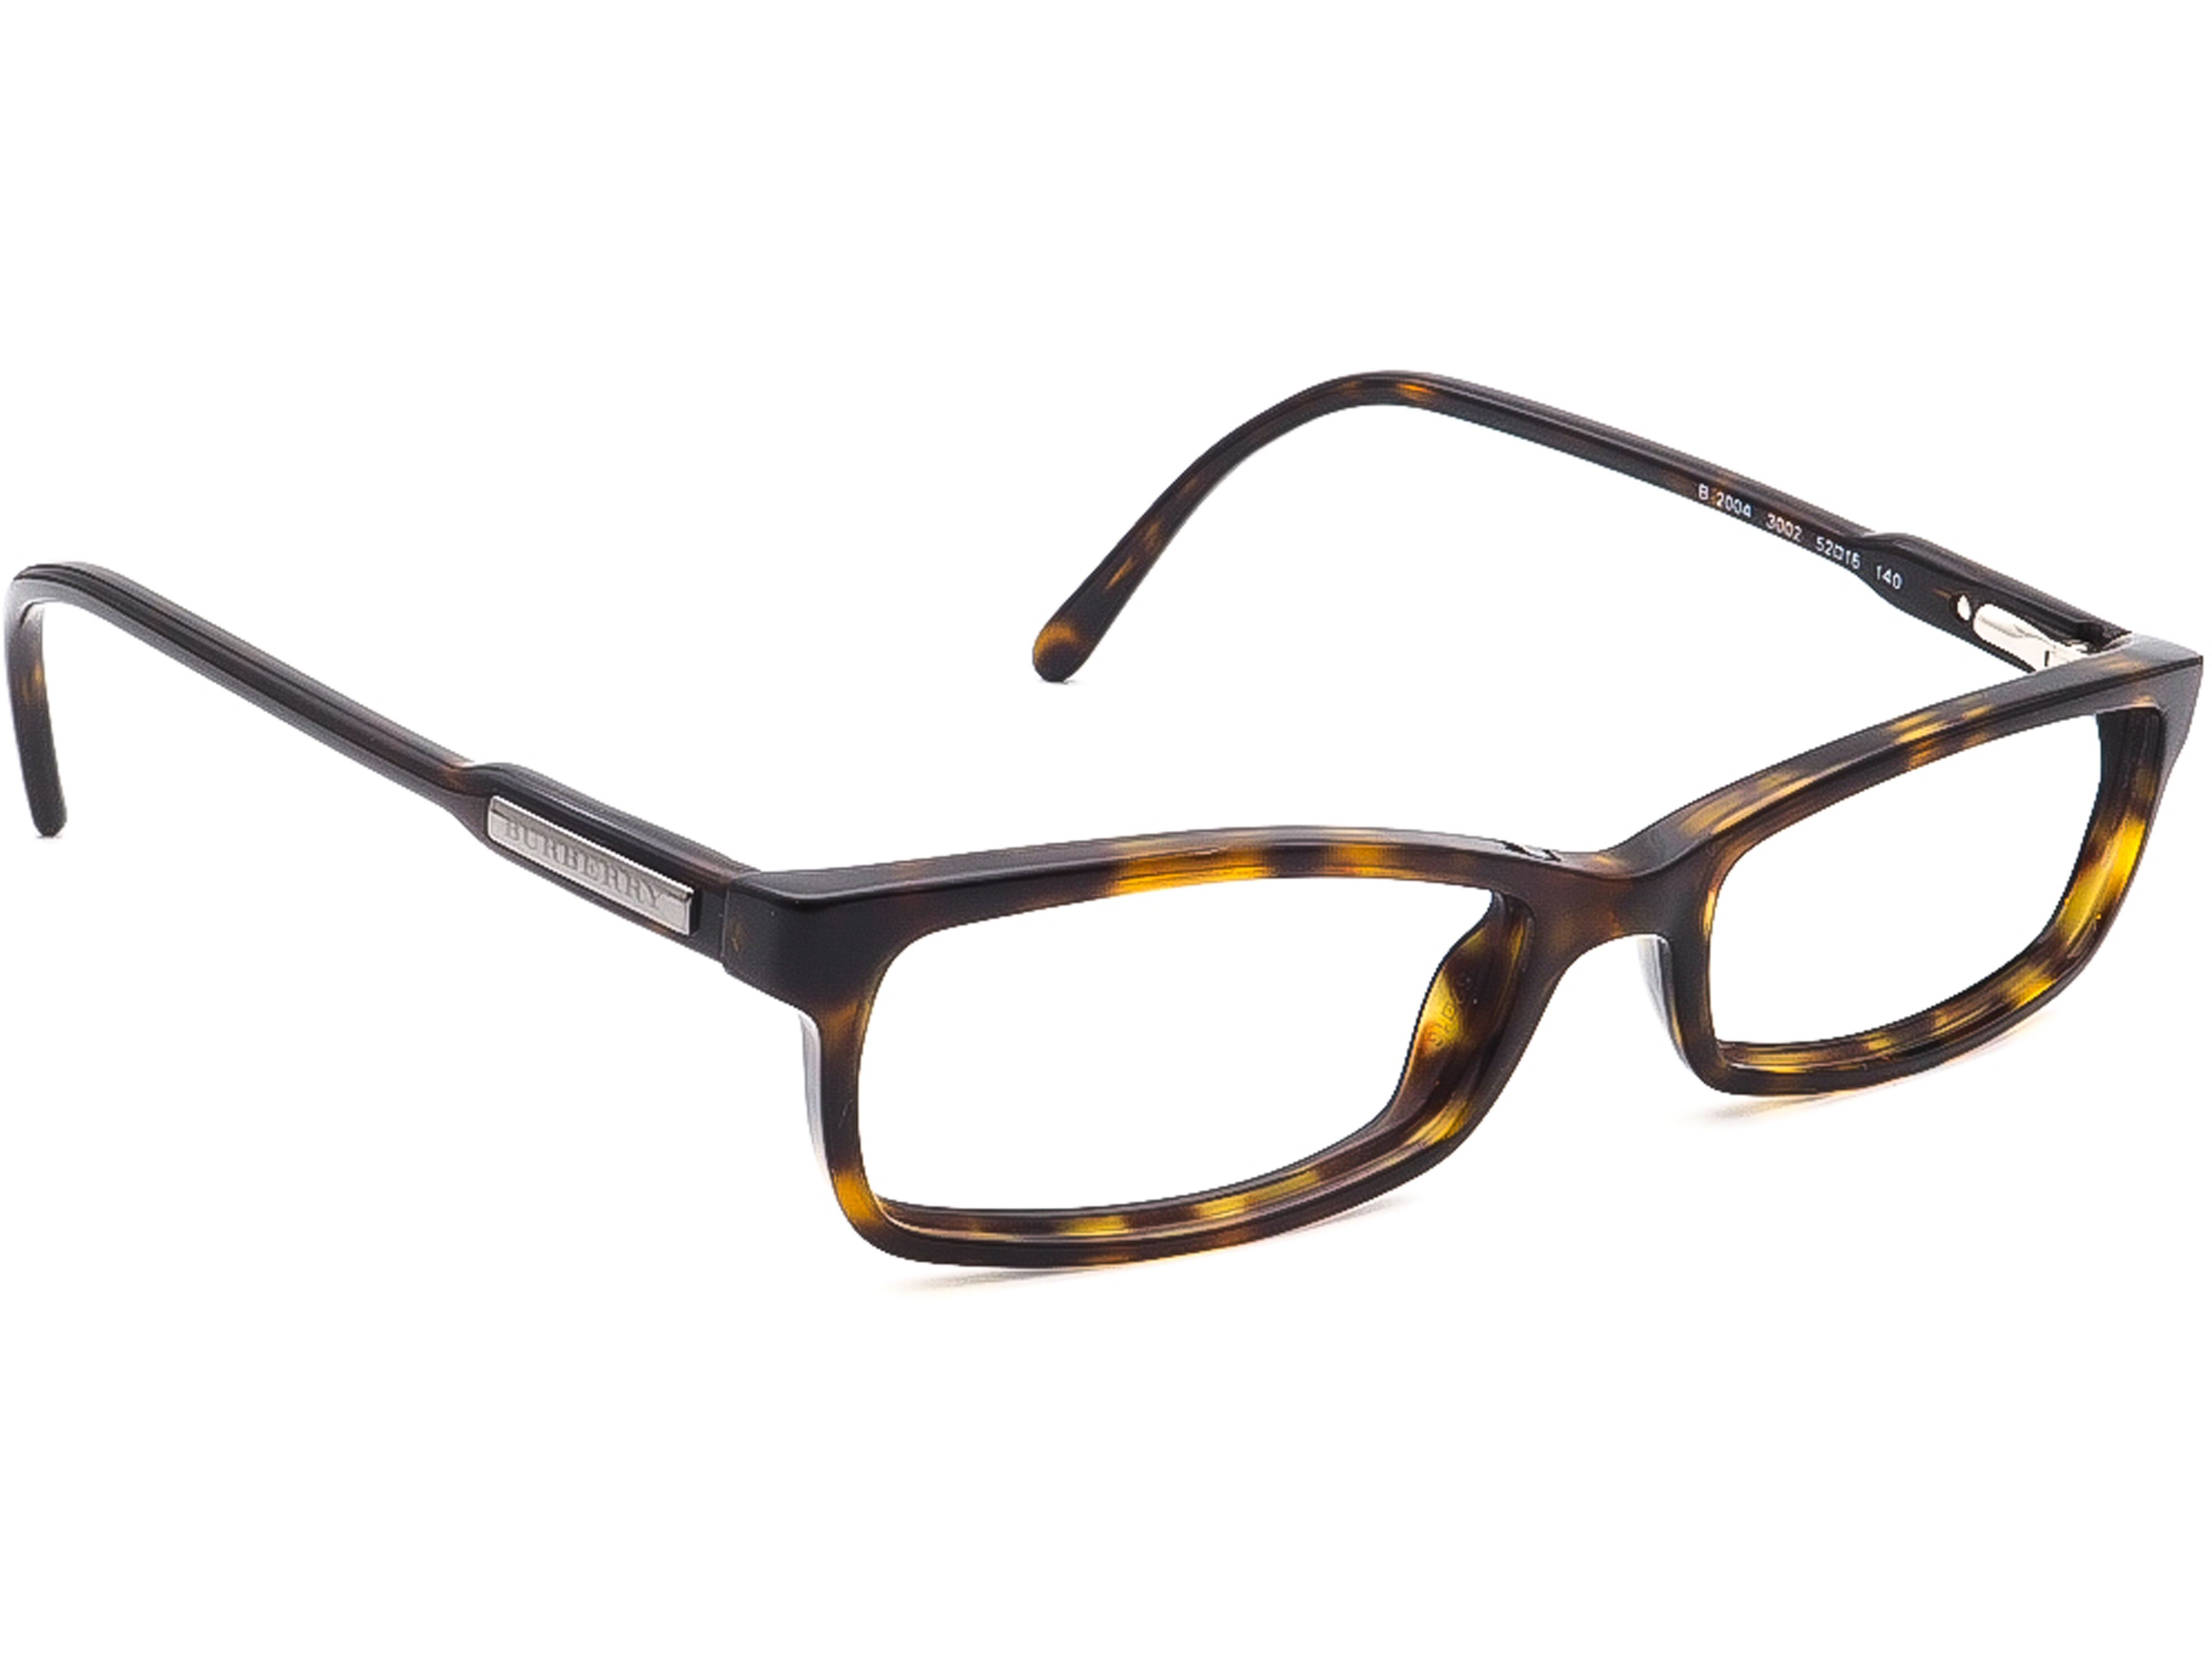 Burberry B 2004 3002 Eyeglasses